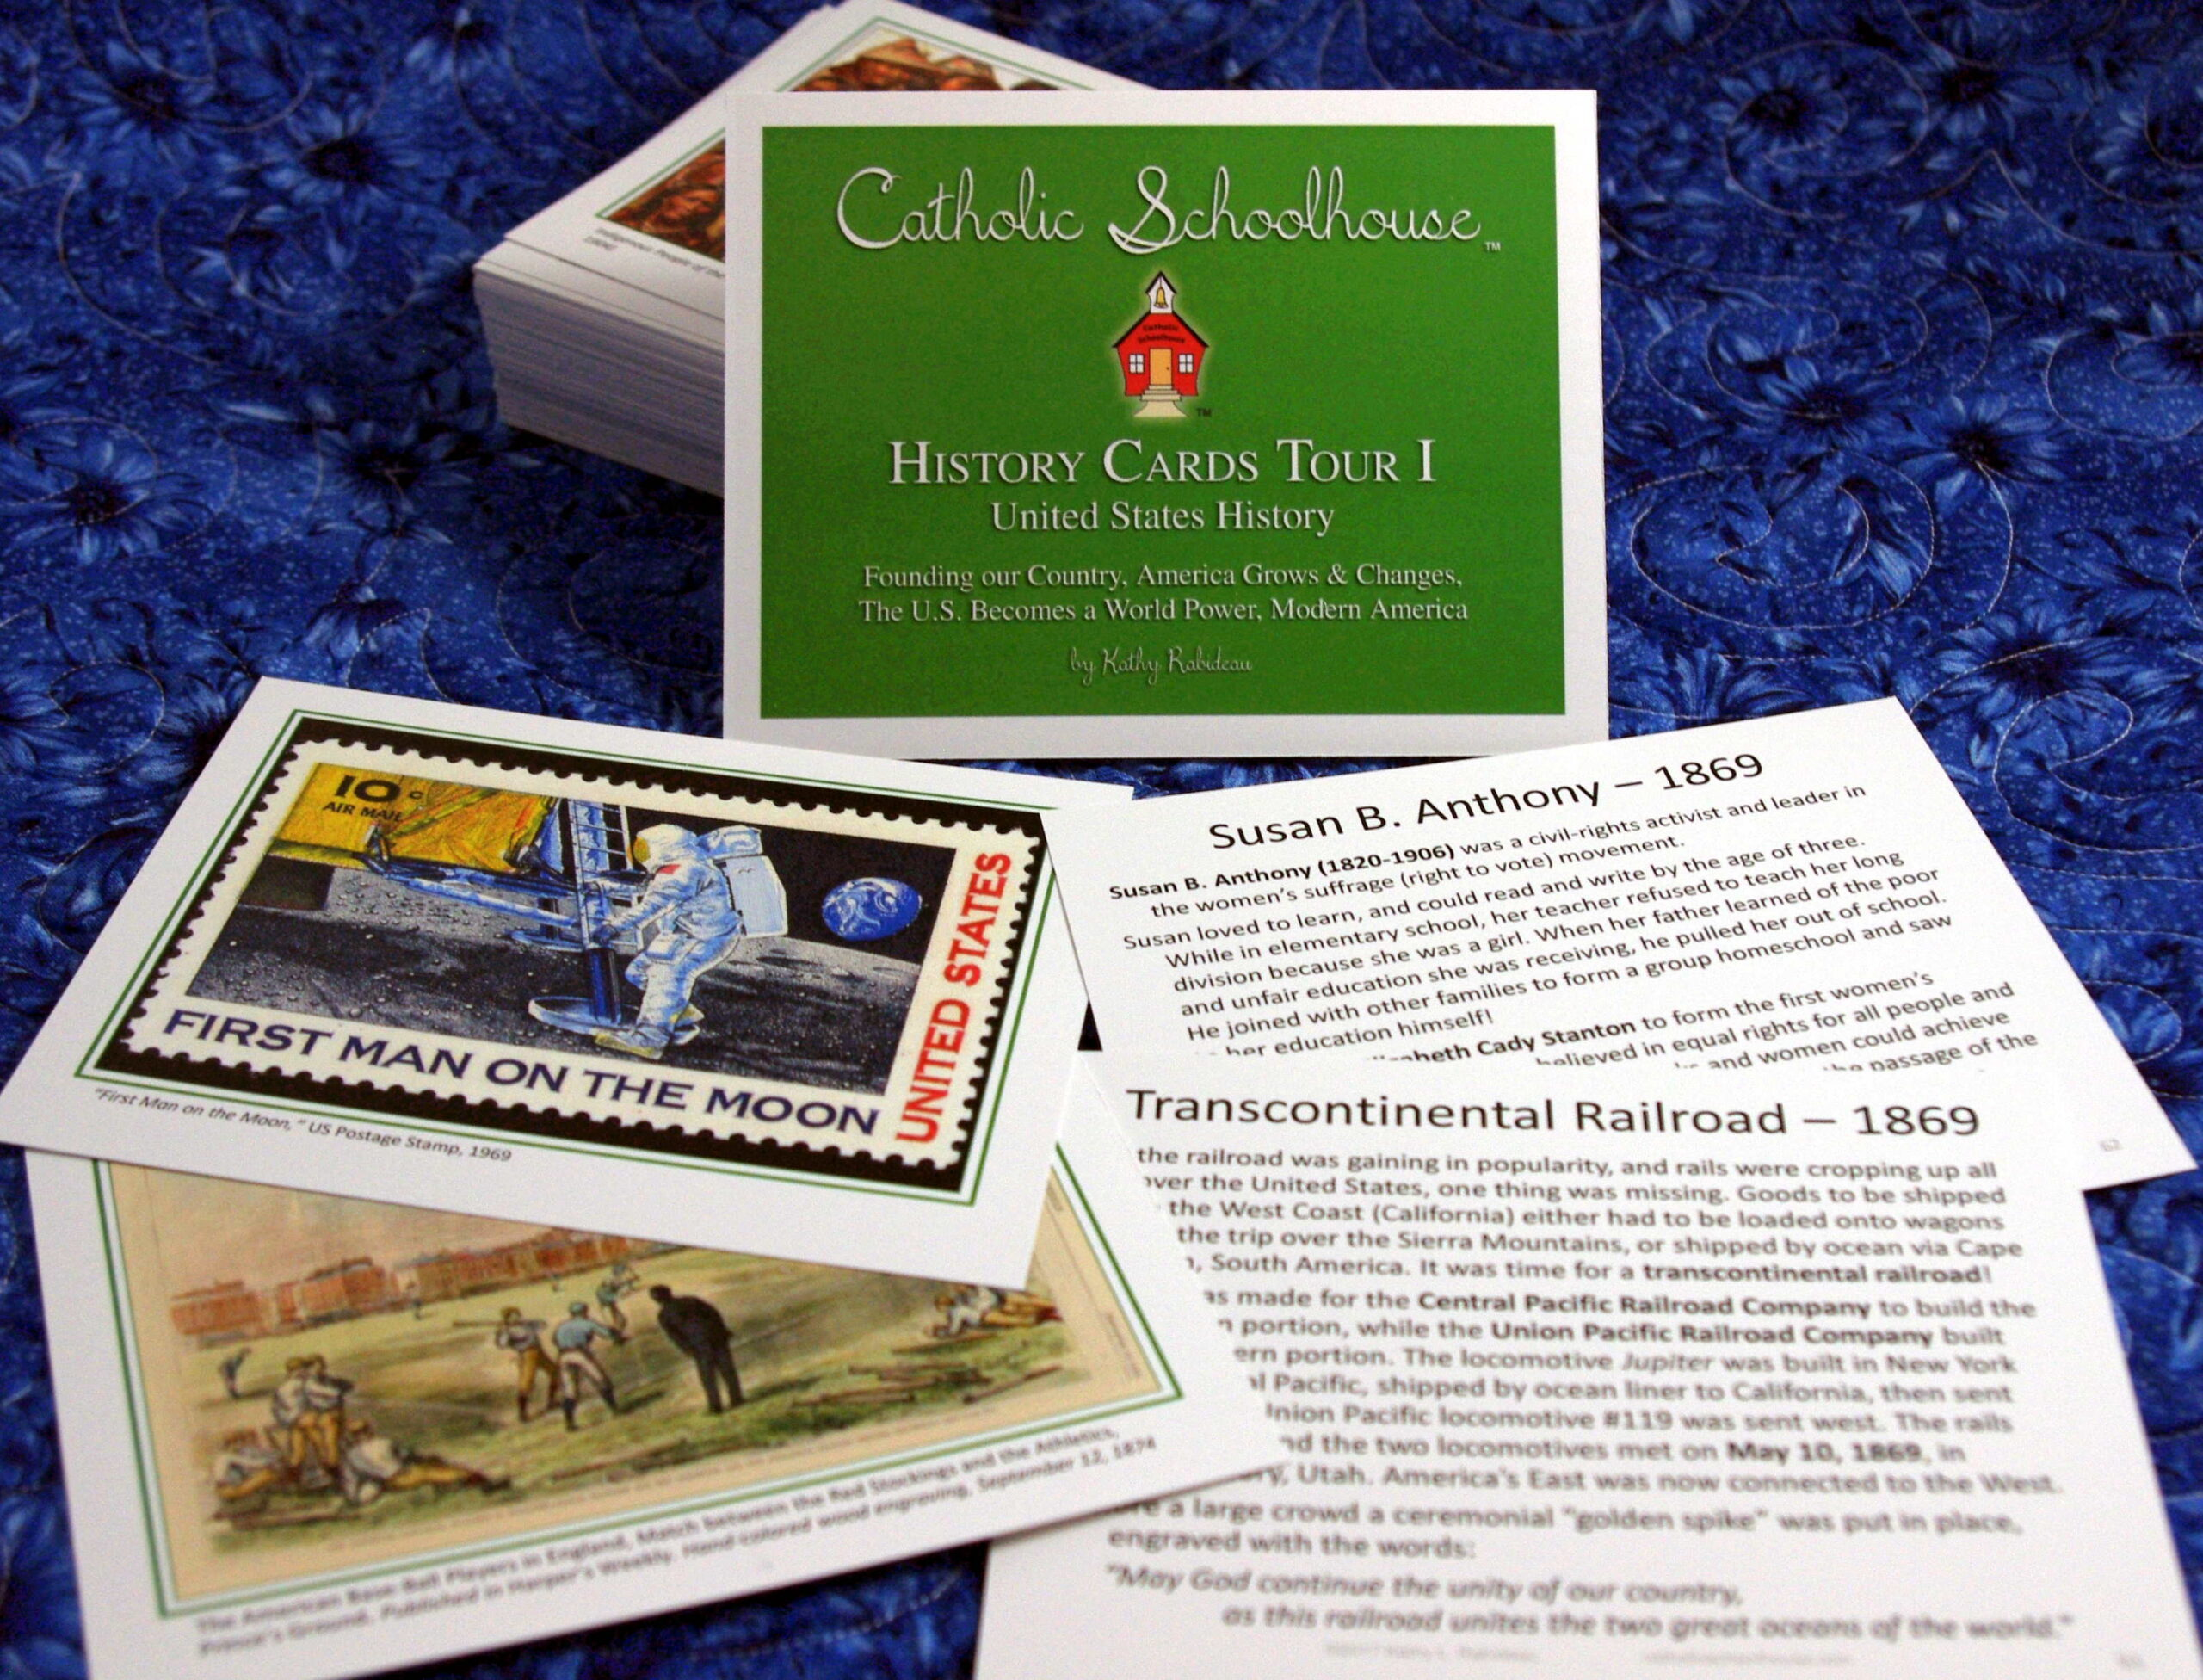 Getting the most from CSH History Cards